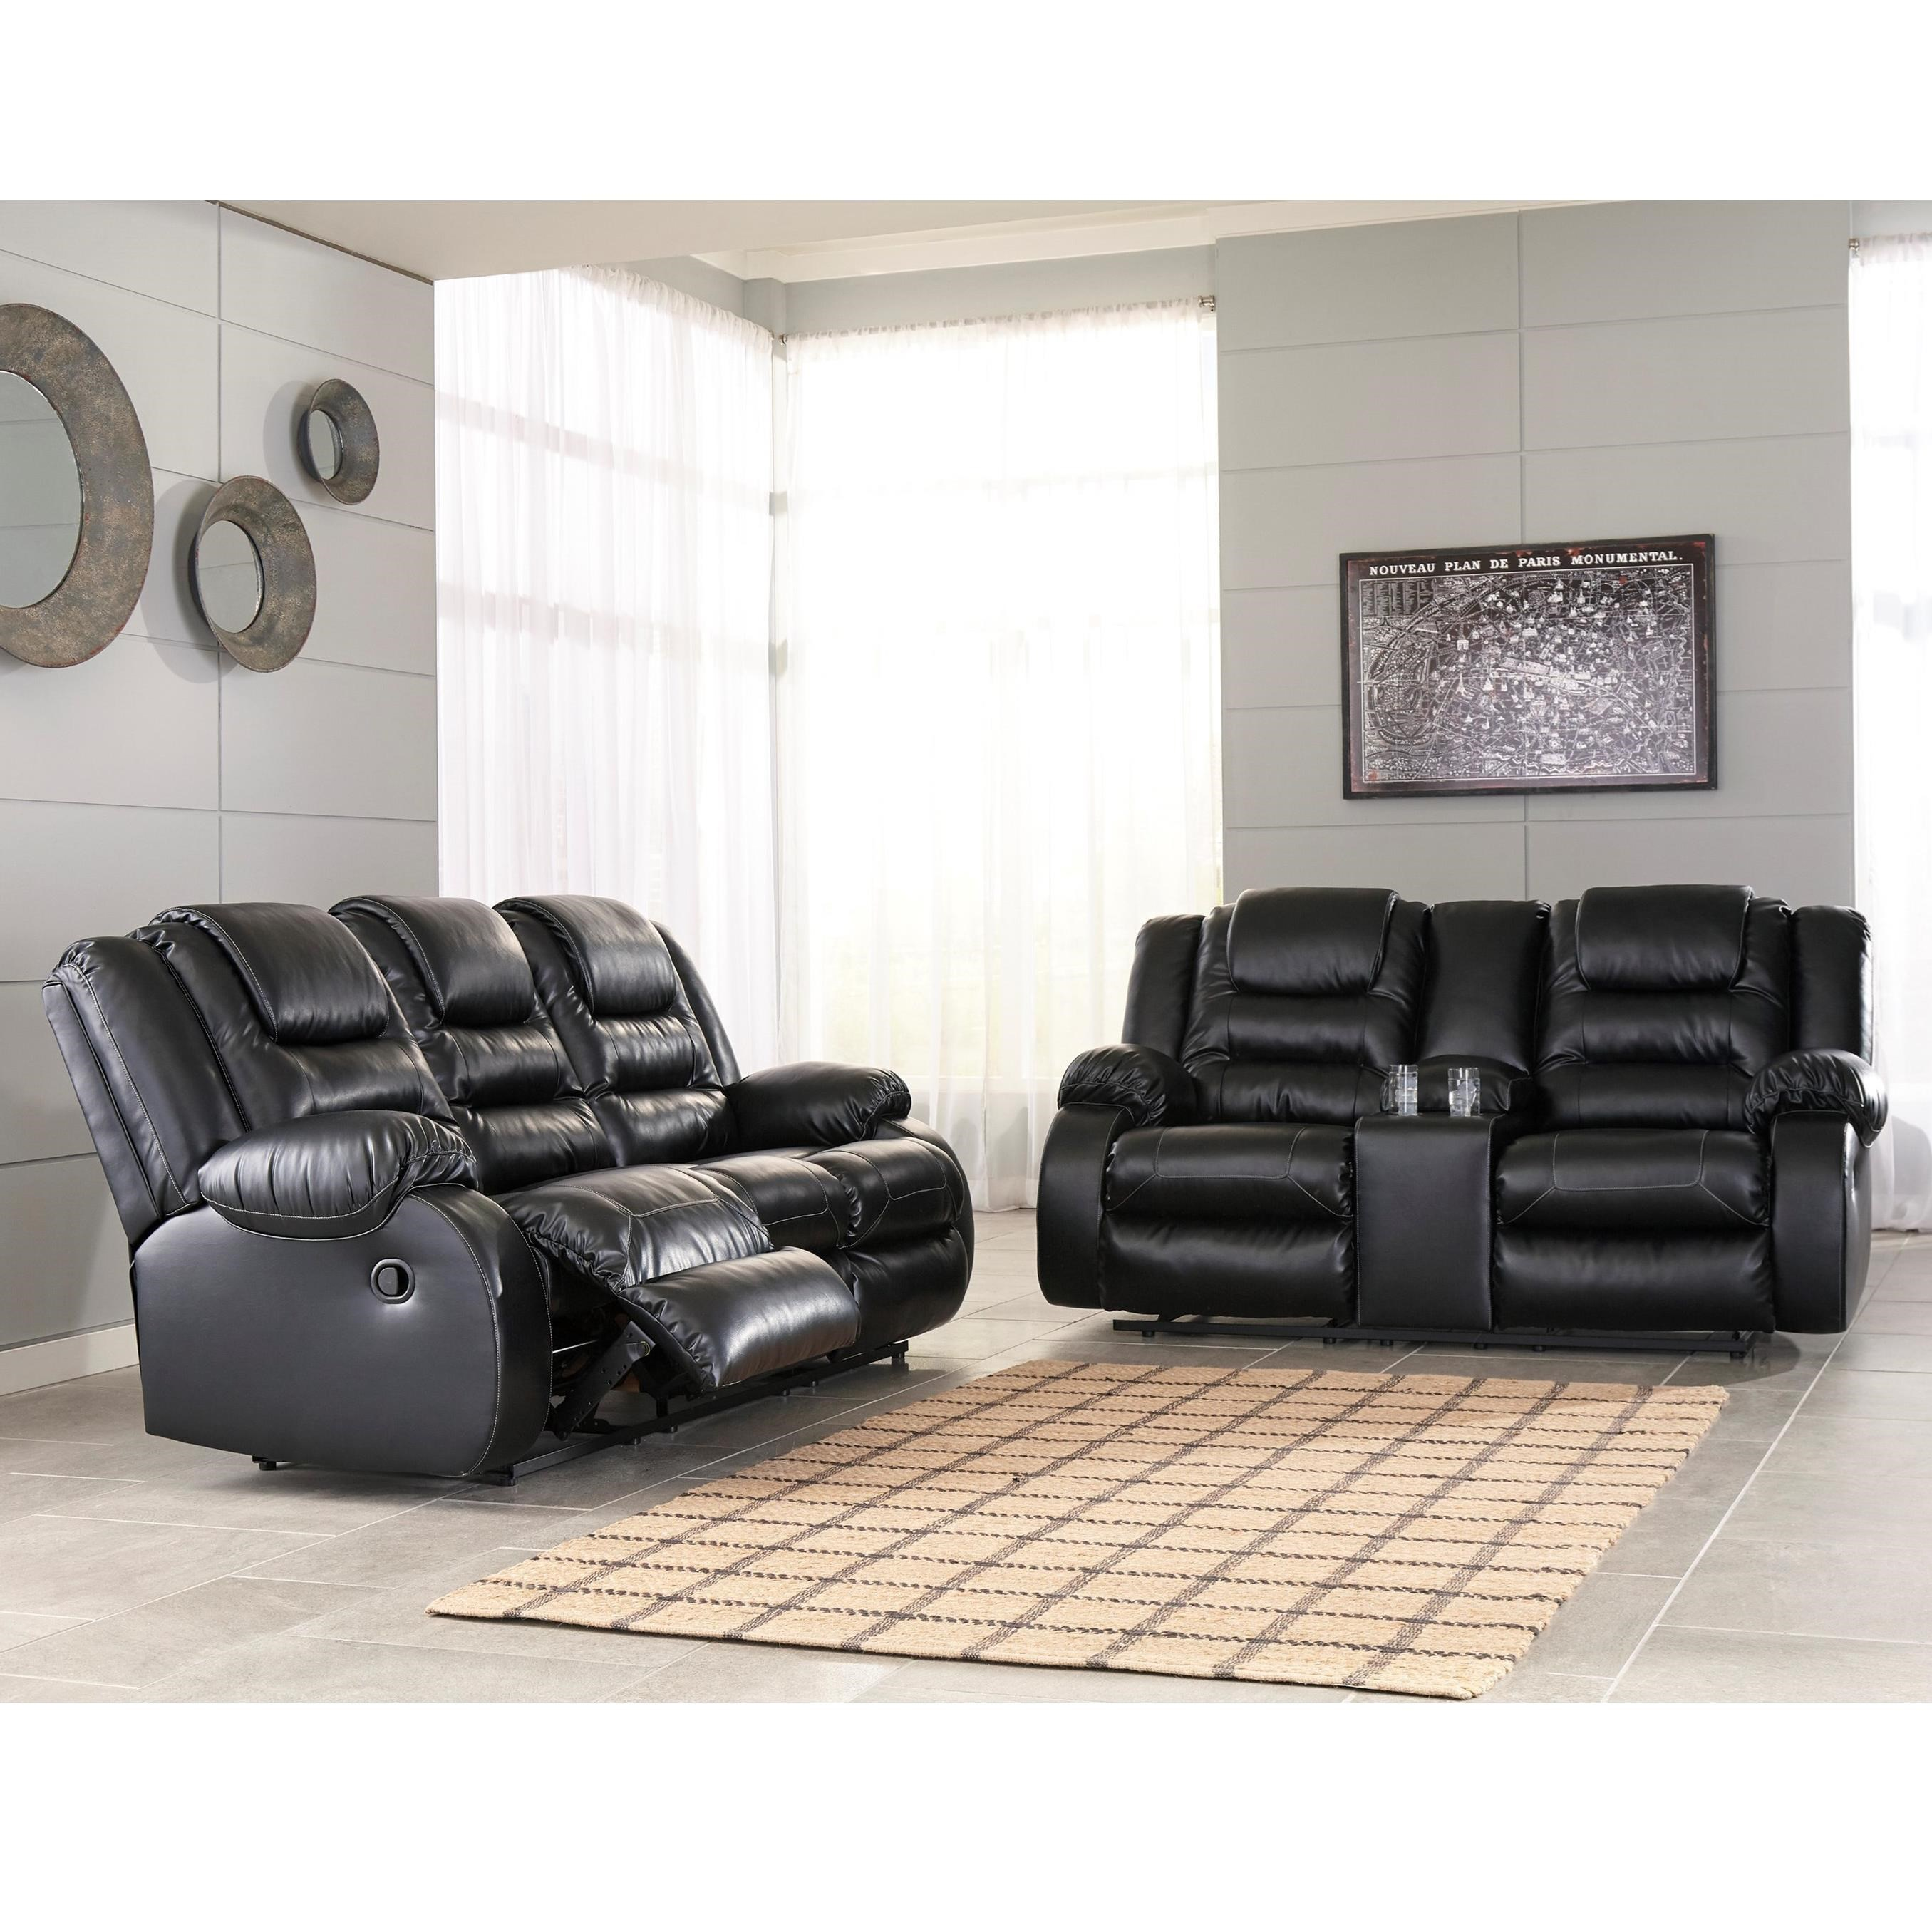 Ashley Furniture Manufacturer: Signature Design By Ashley Vacherie Reclining Living Room